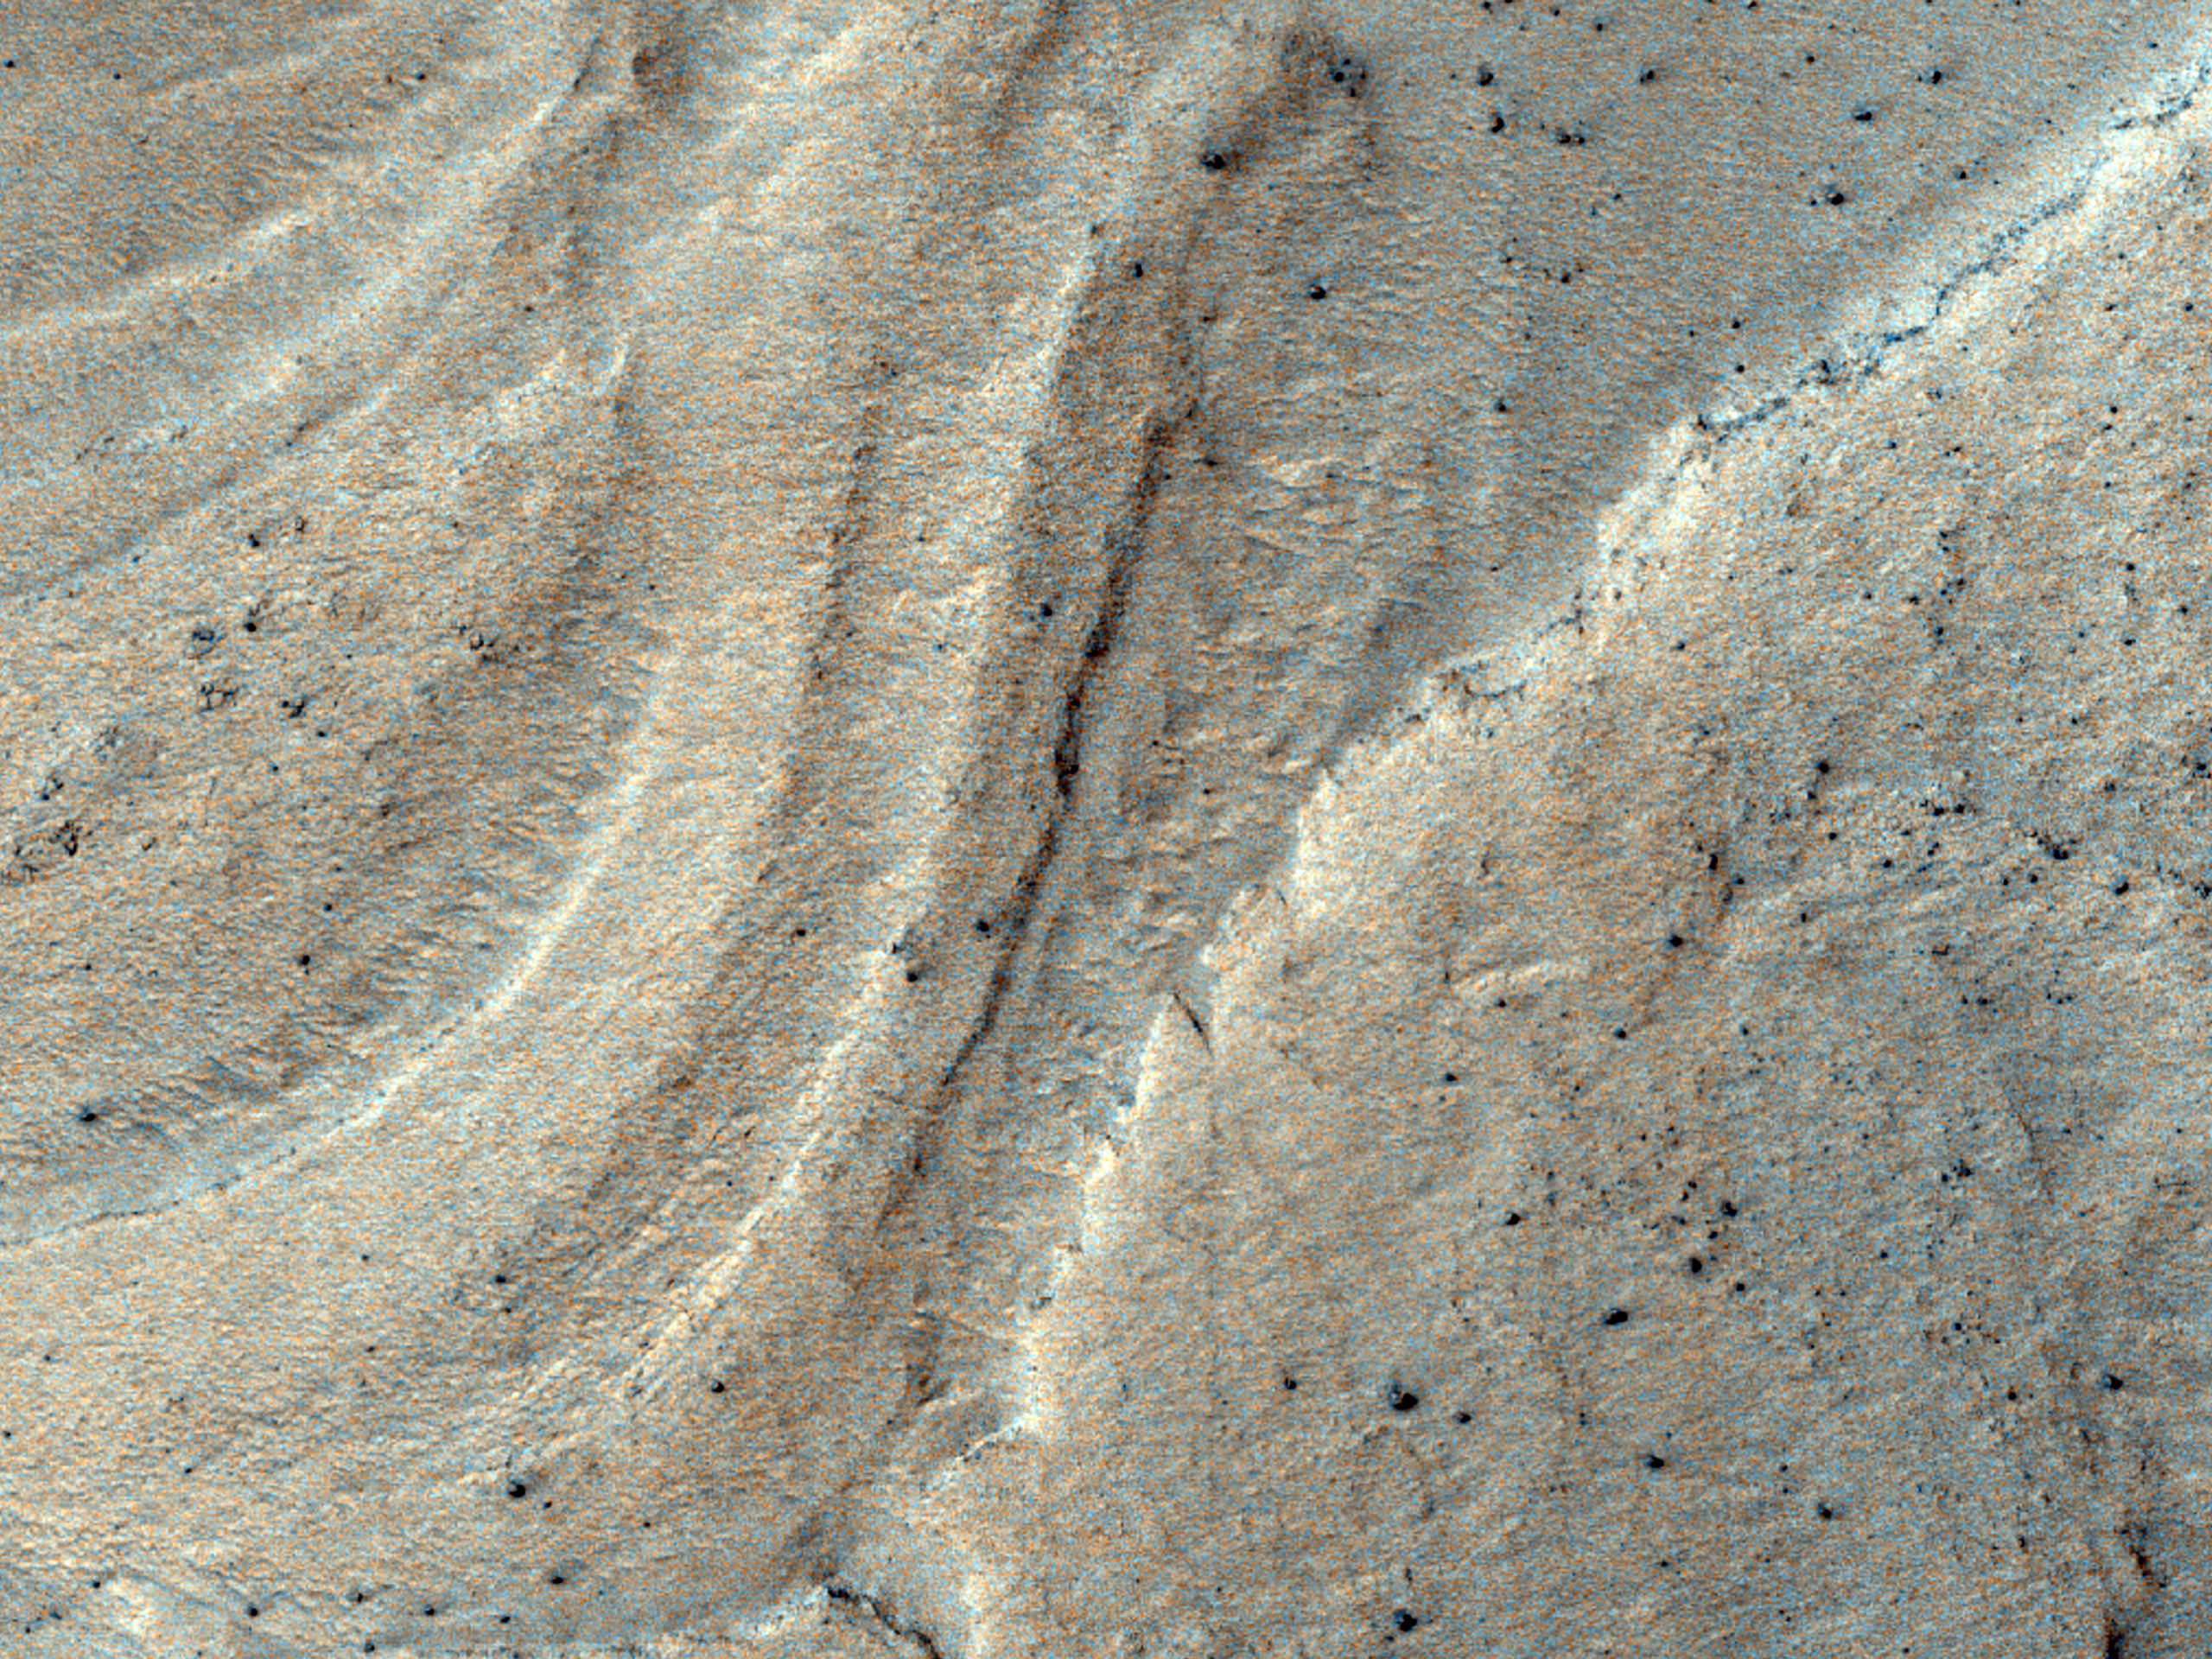 Layers or Bands in Southern Hellas Planitia